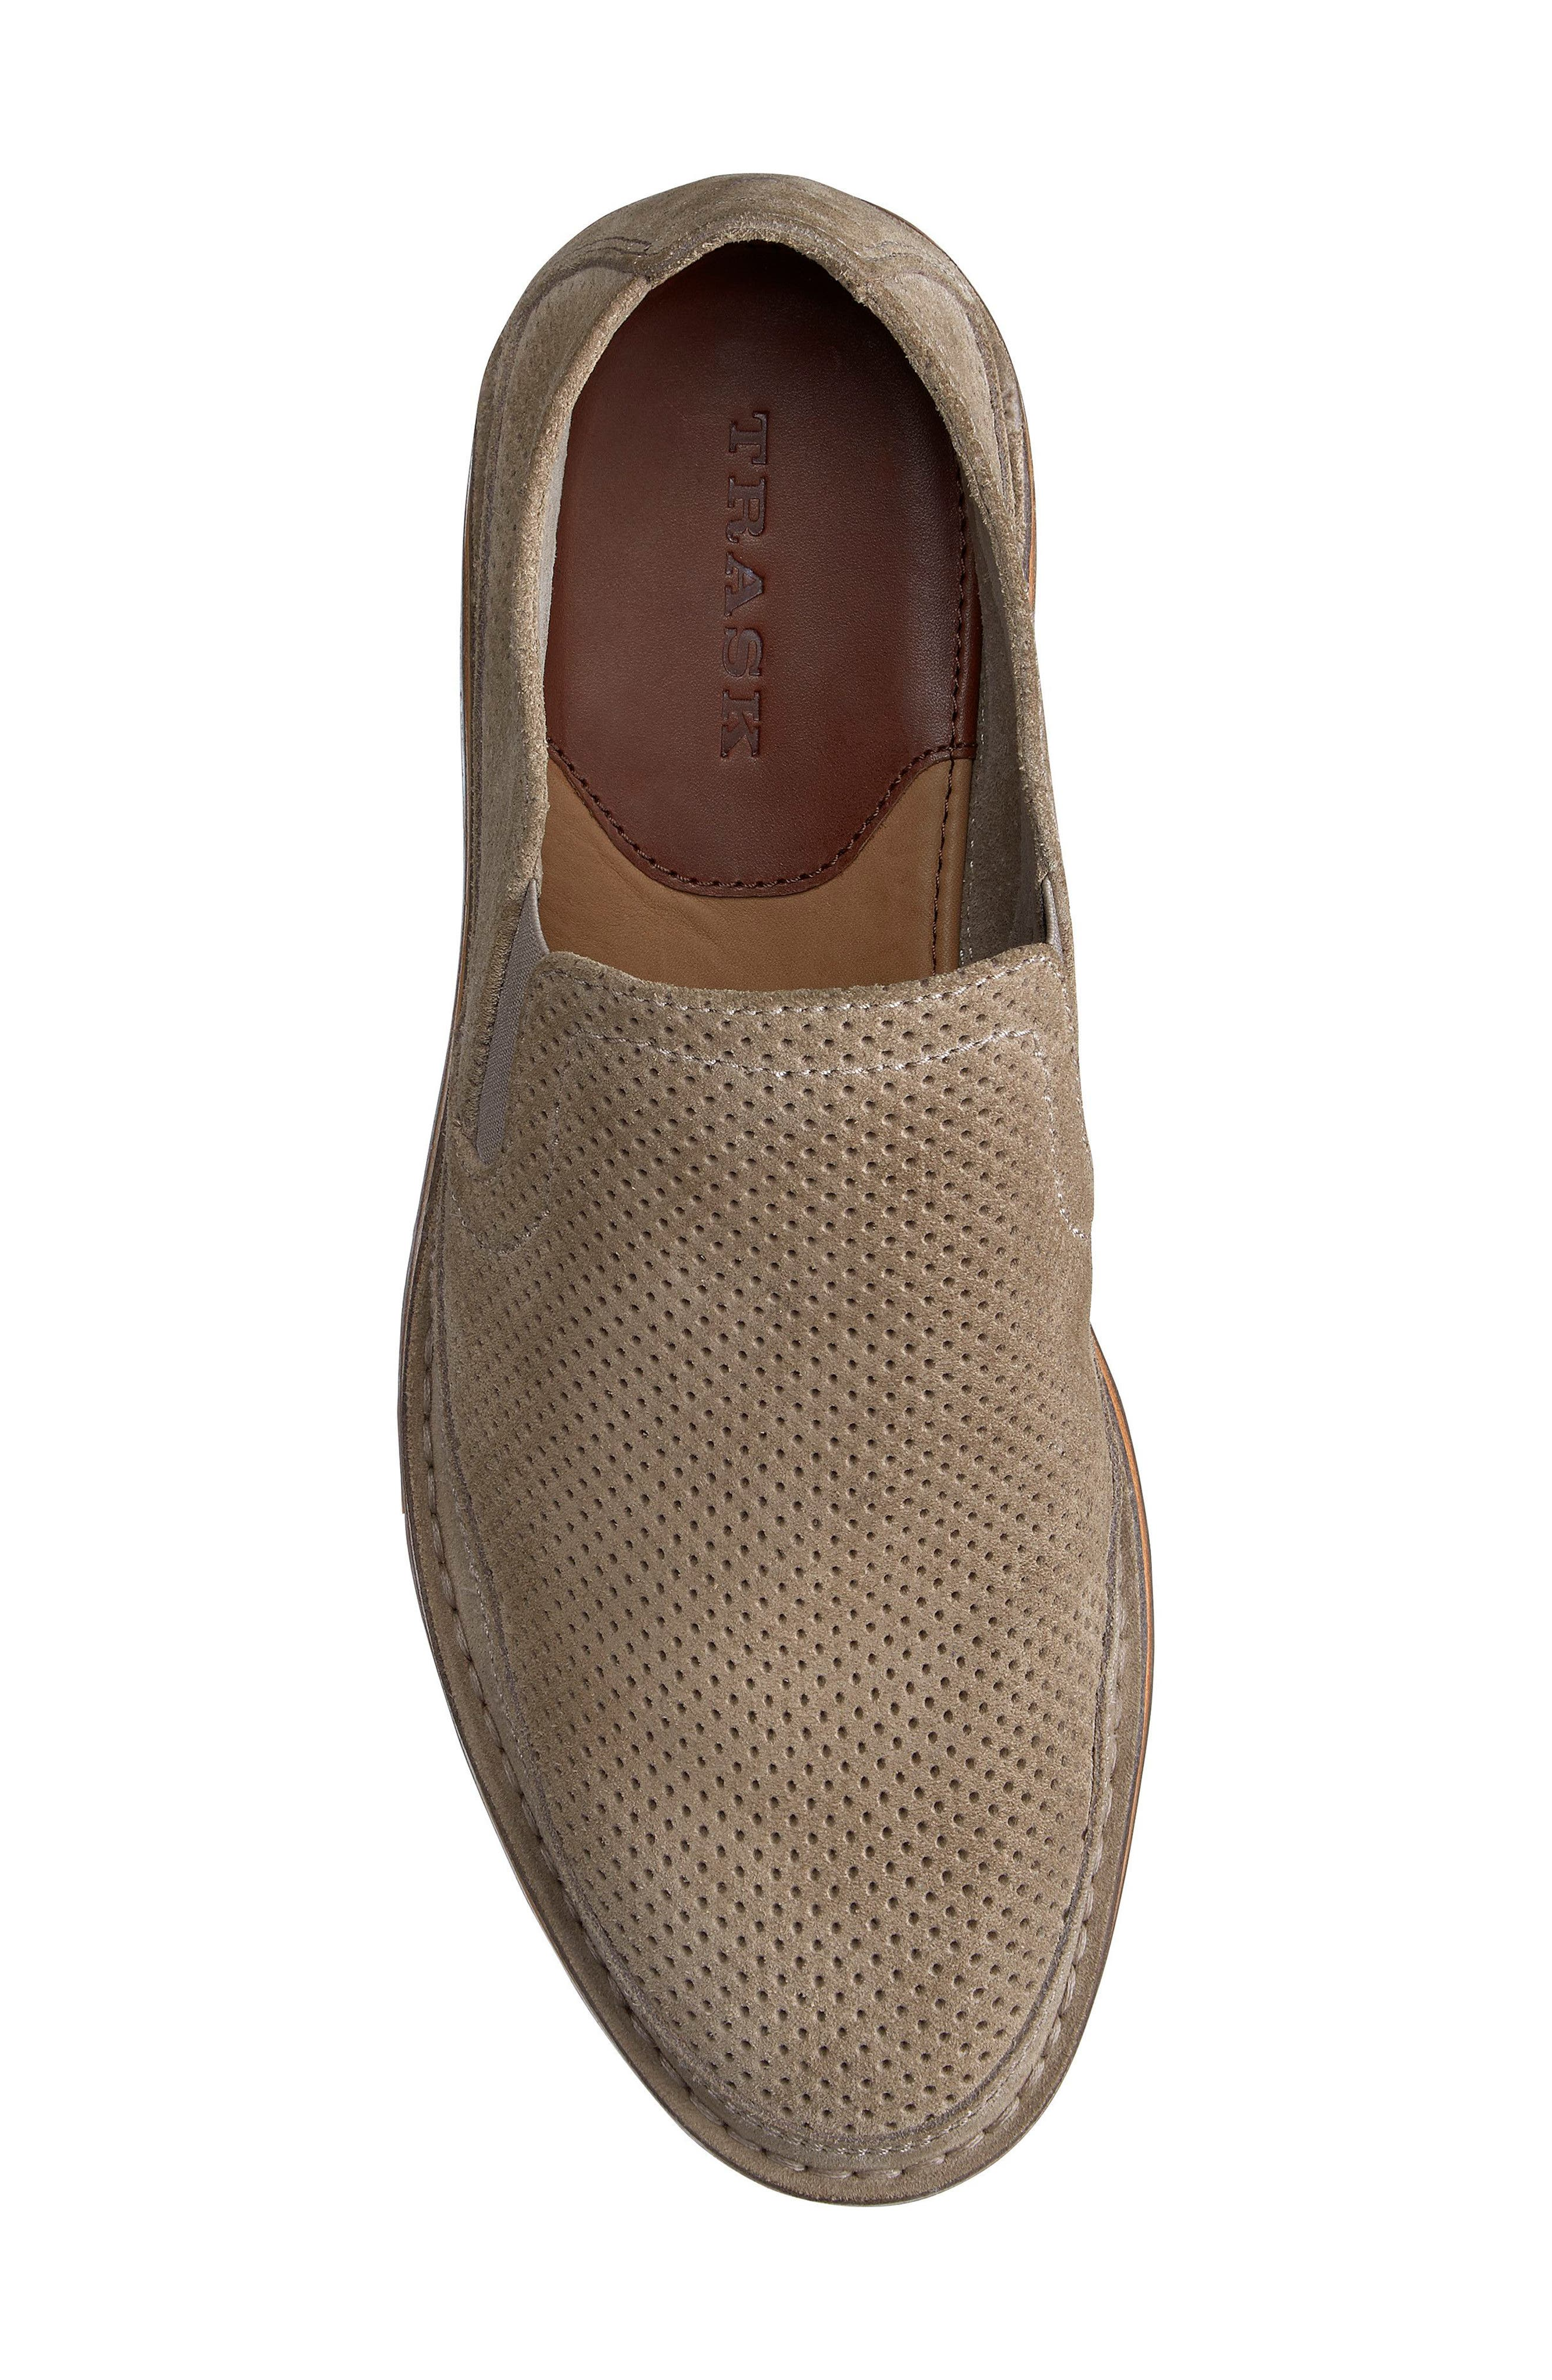 TRASK, Bradley Perforated Slip-On, Alternate thumbnail 5, color, TAUPE SUEDE